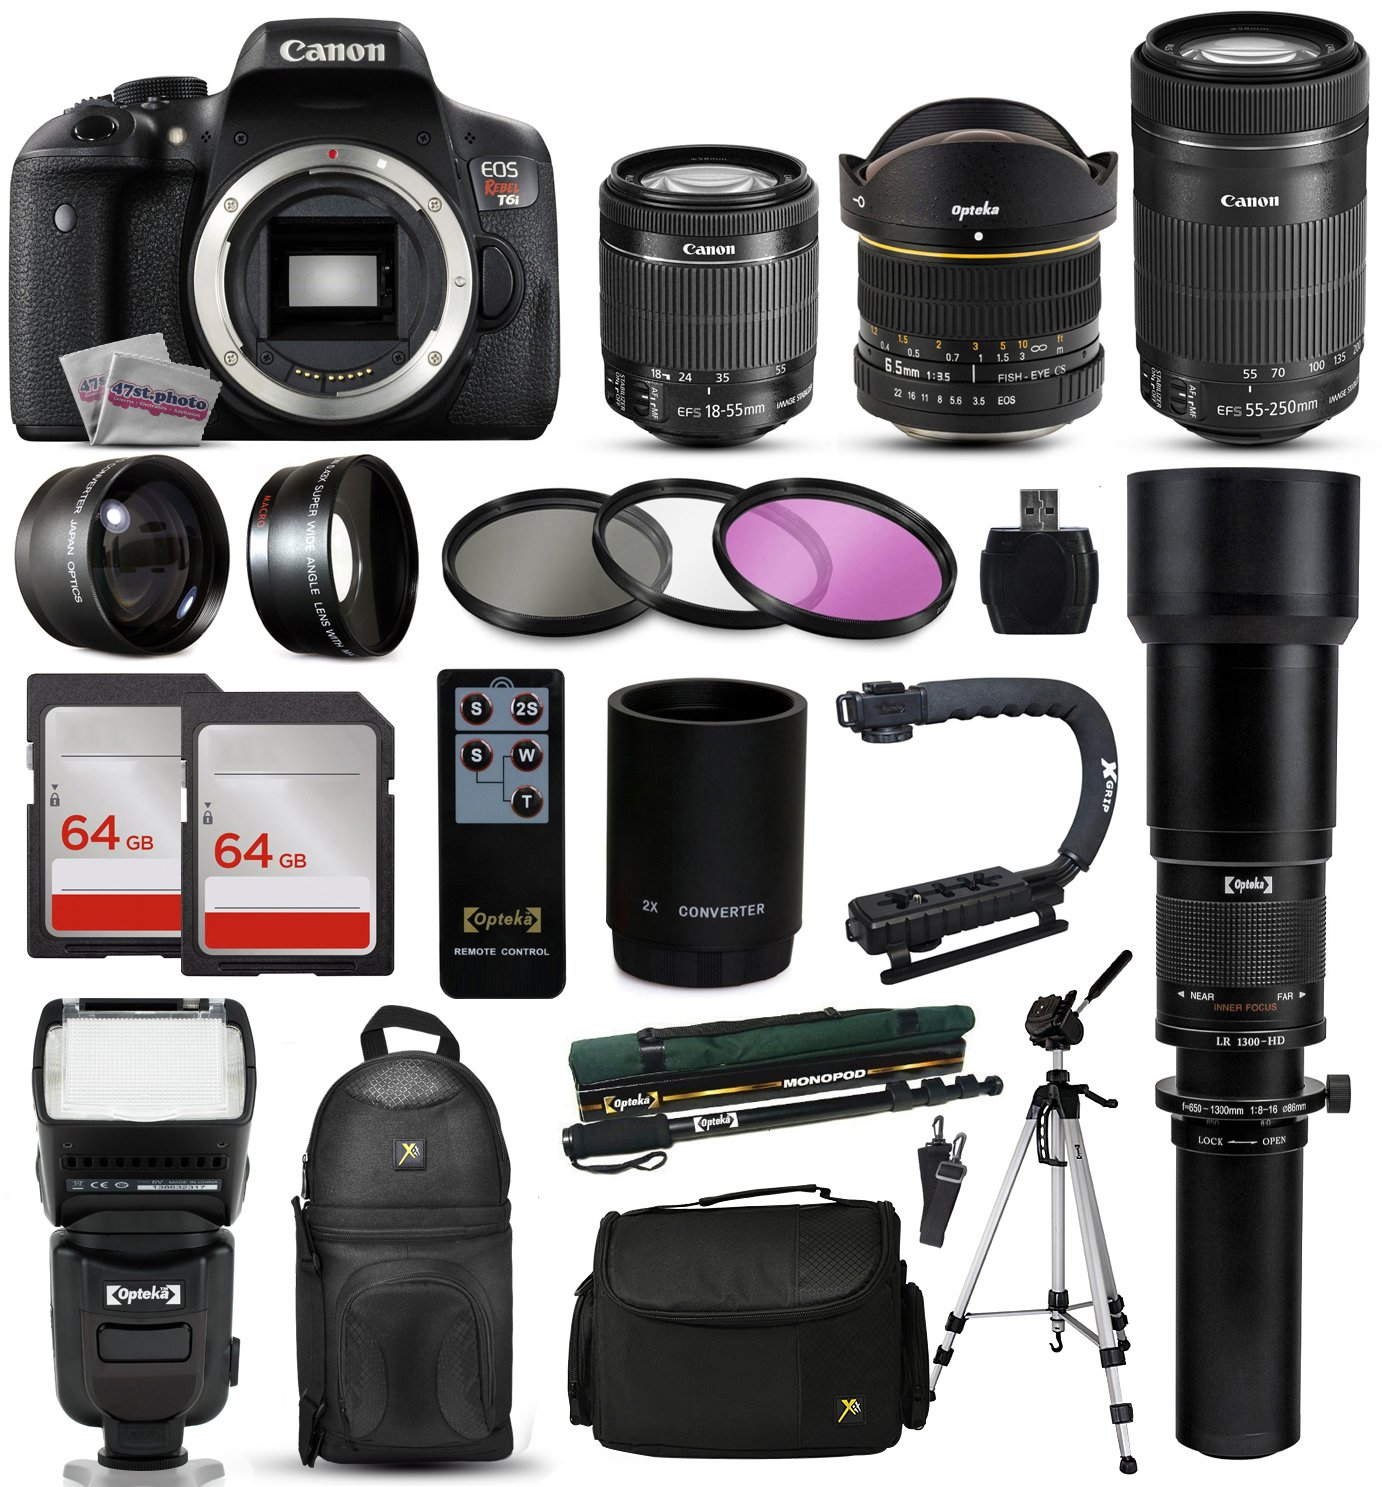 Canon EOS Rebel T6i Digital SLR Camera with EF-S 18-55mm, 55-250mm, Opteka 650-1300mm Lens, 2x 64GB SD Card, 72' Monopod, 2.2x Telephoto Lens, Sling Backpack, 10pcs Cleaning Kit and Accessory Bundle 72 Monopod 47th Street Photo CNT6I185565552506501300